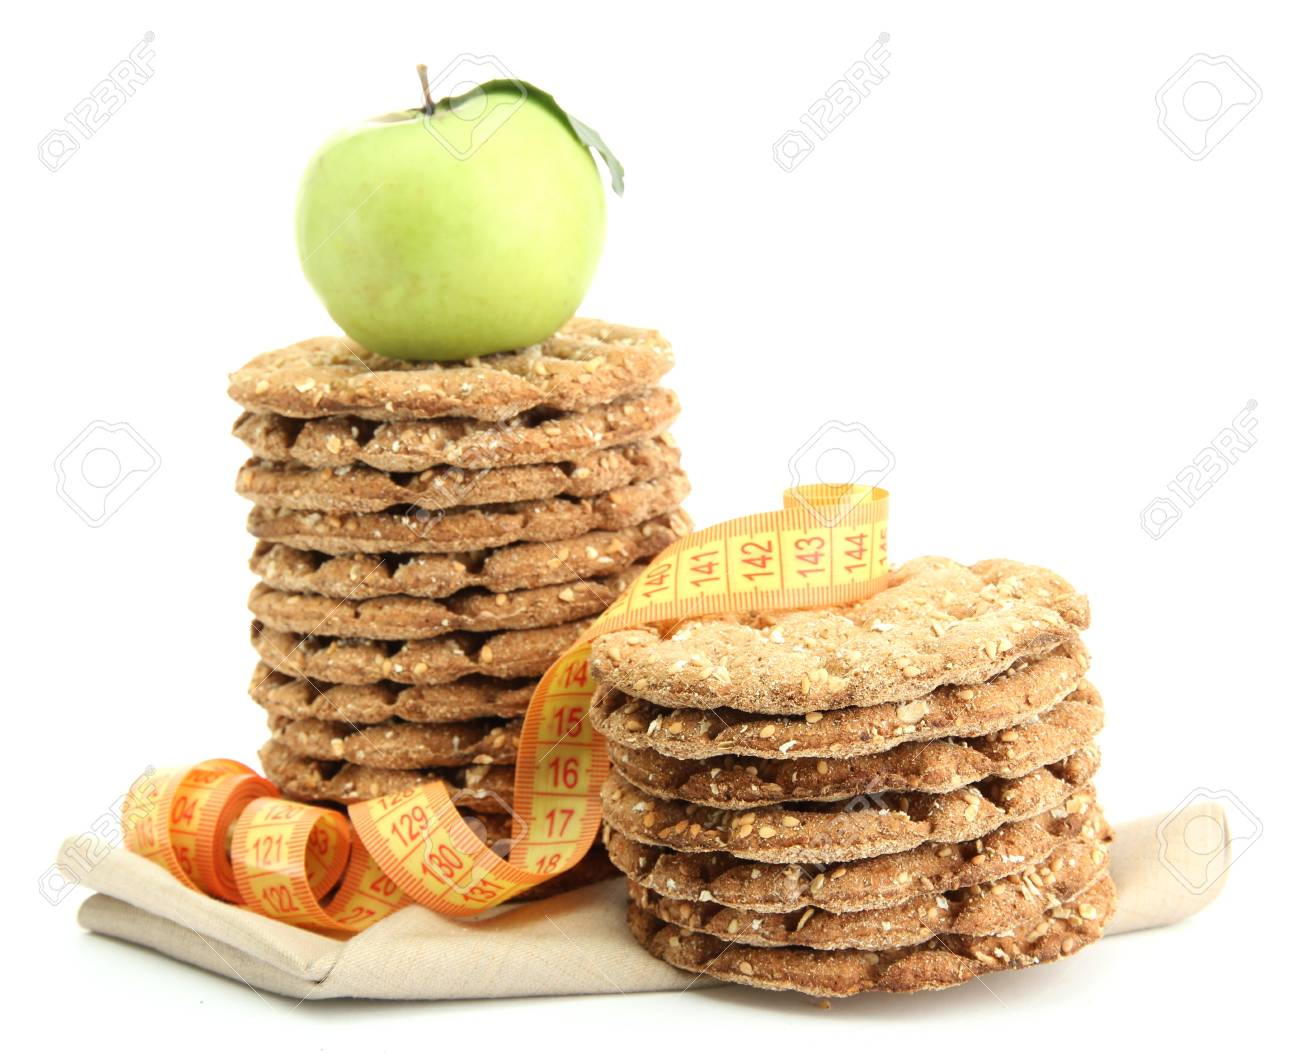 tasty crispbread, apple and measuring tape, isolated on white Stock Photo - 15851903